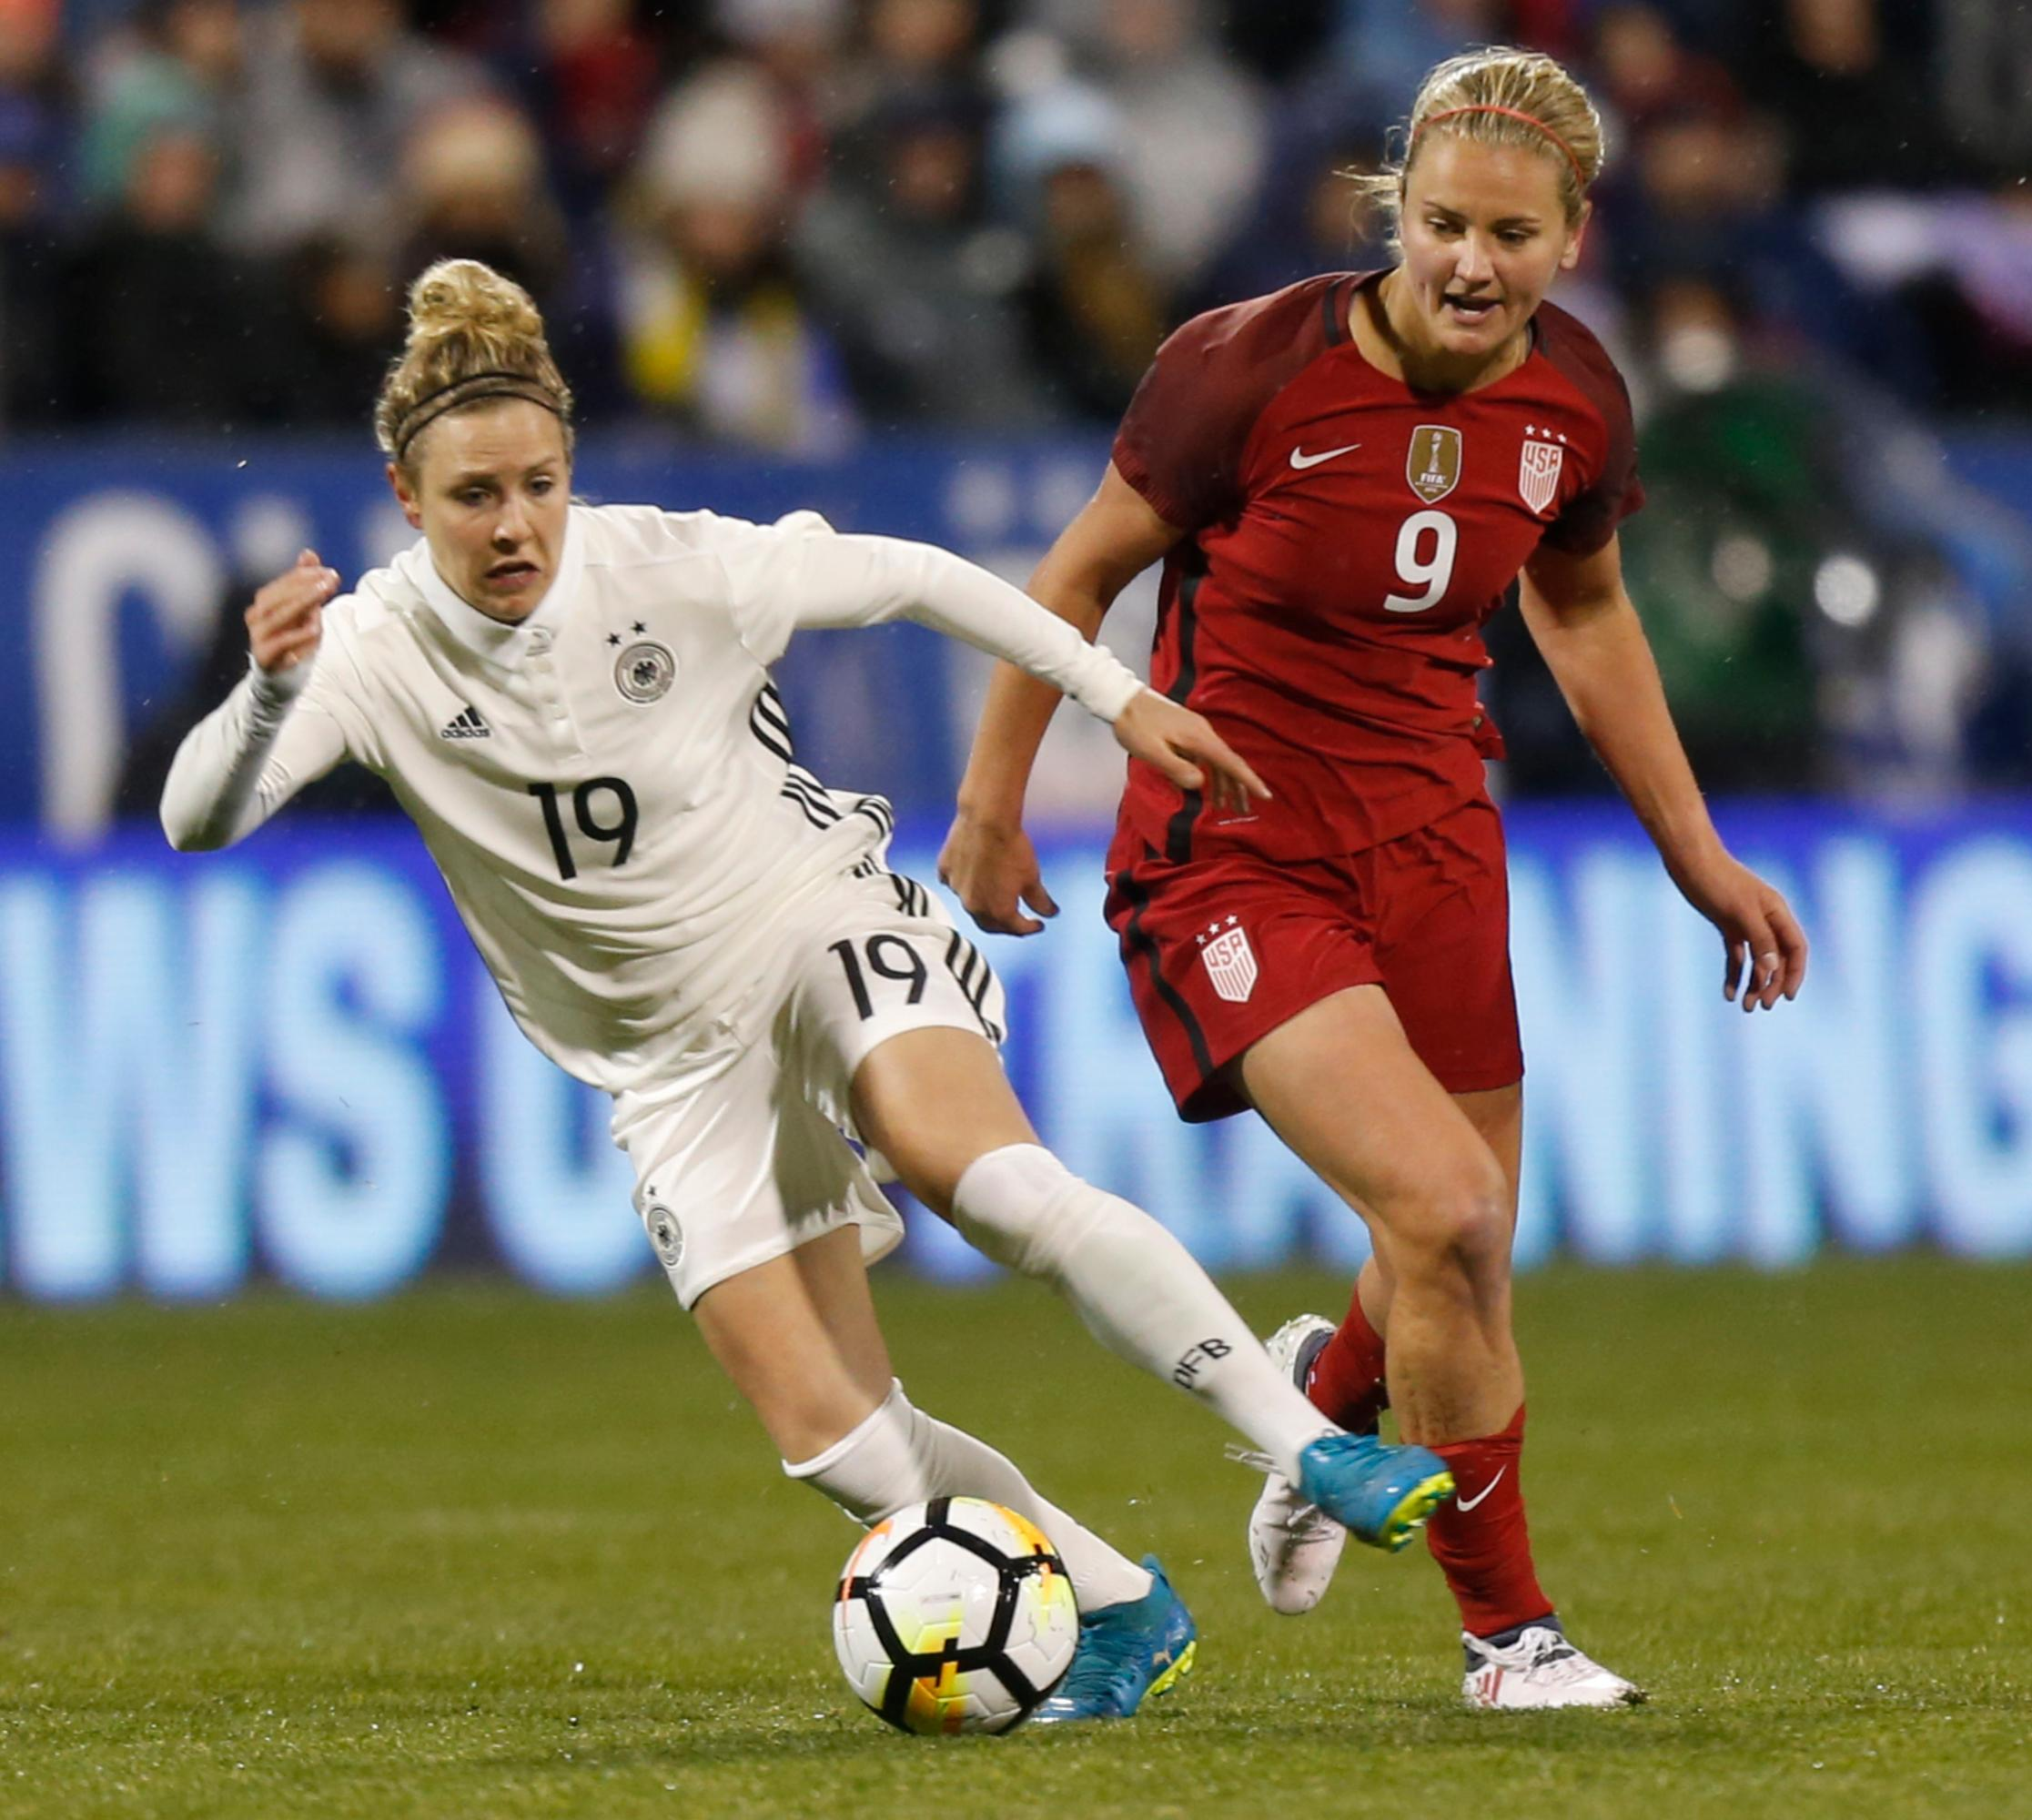 Germany's Svenja Huth, left, dribbles past United States' Lindsey Horan during the first half of a SheBelieves Cup women's soccer match Thursday, March 1, 2018, in Columbus, Ohio. (AP Photo/Jay LaPrete)